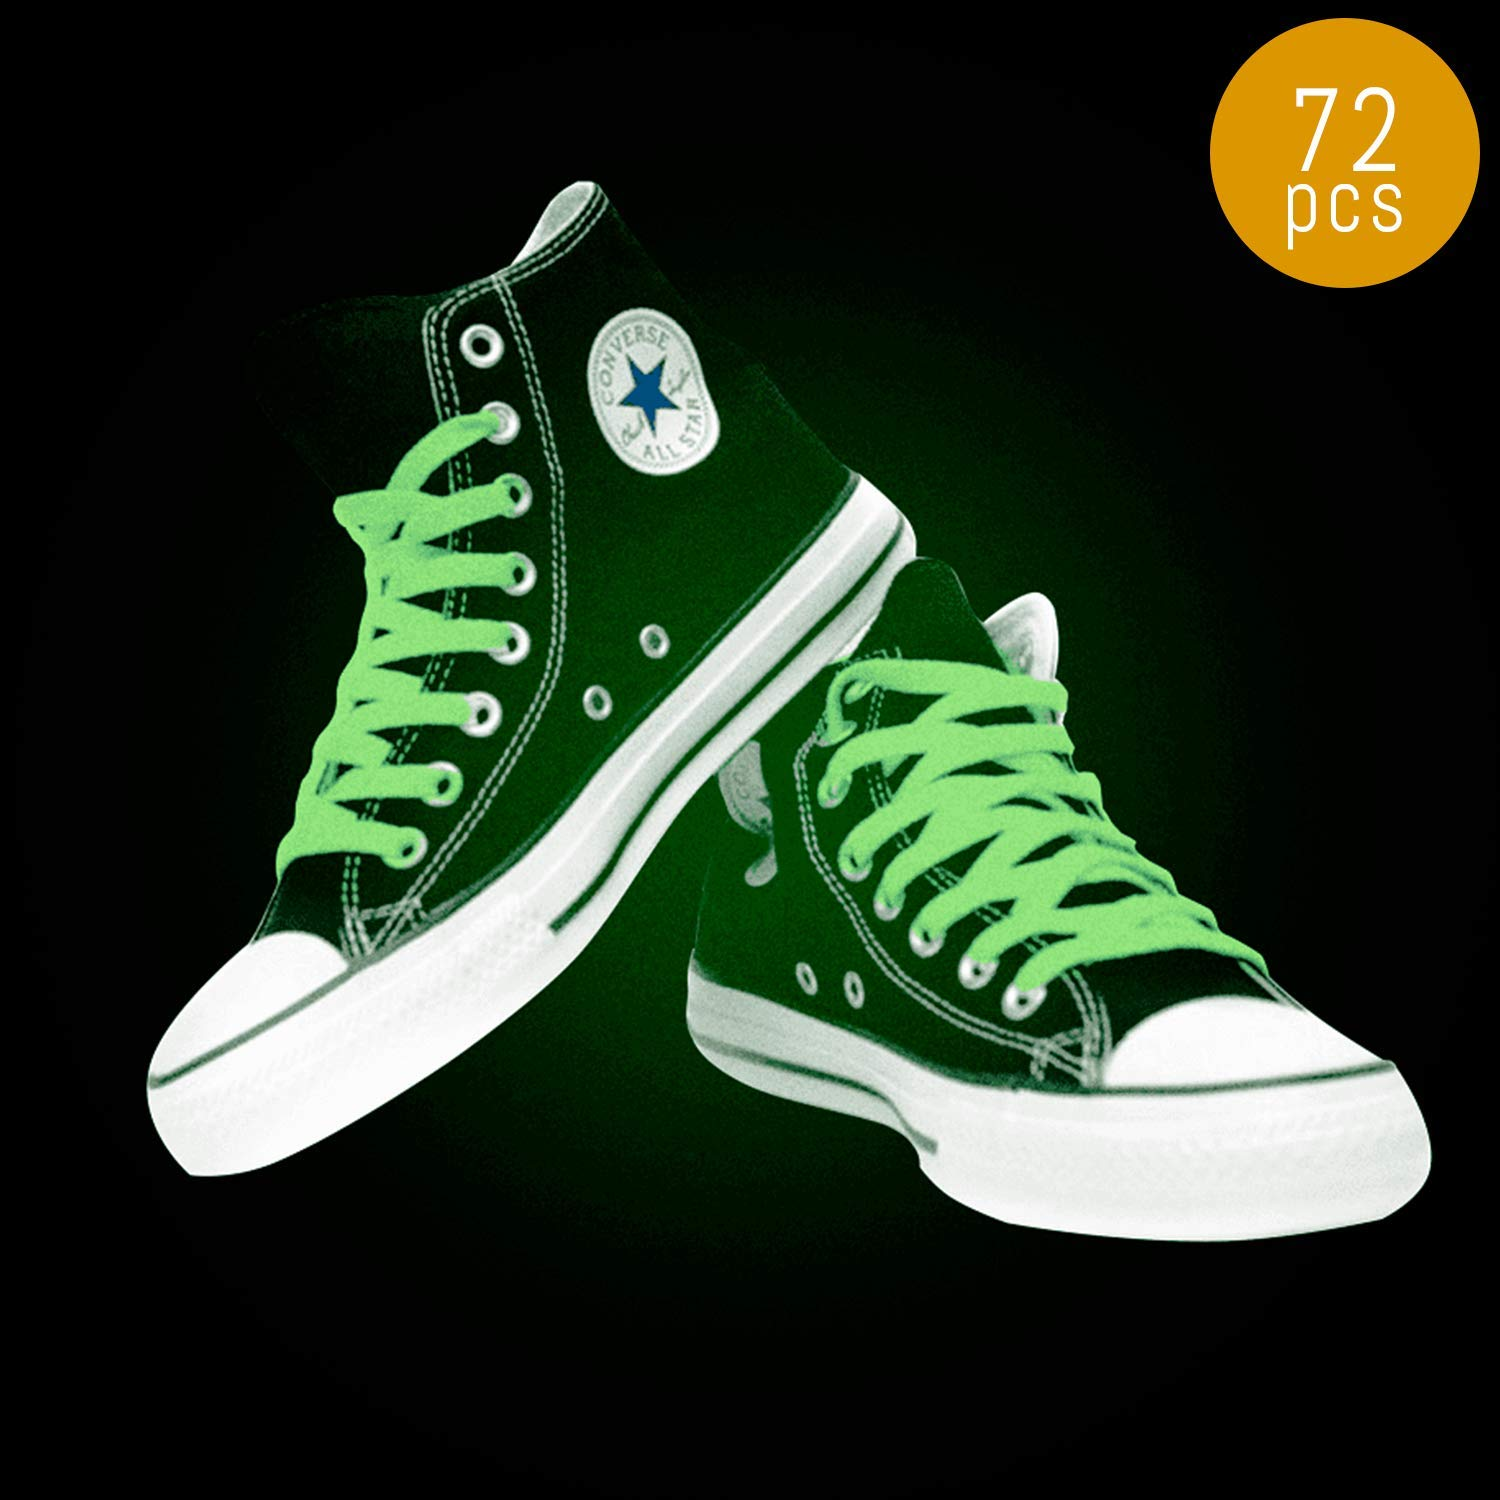 Lumistick Glow in The Dark Shoelaces - Luminous Lace Glow Sneakers Fluorescent Shoe - Illuminate Bright Glowing Casual Shoelaces Party Favor (72 Shoelaces)